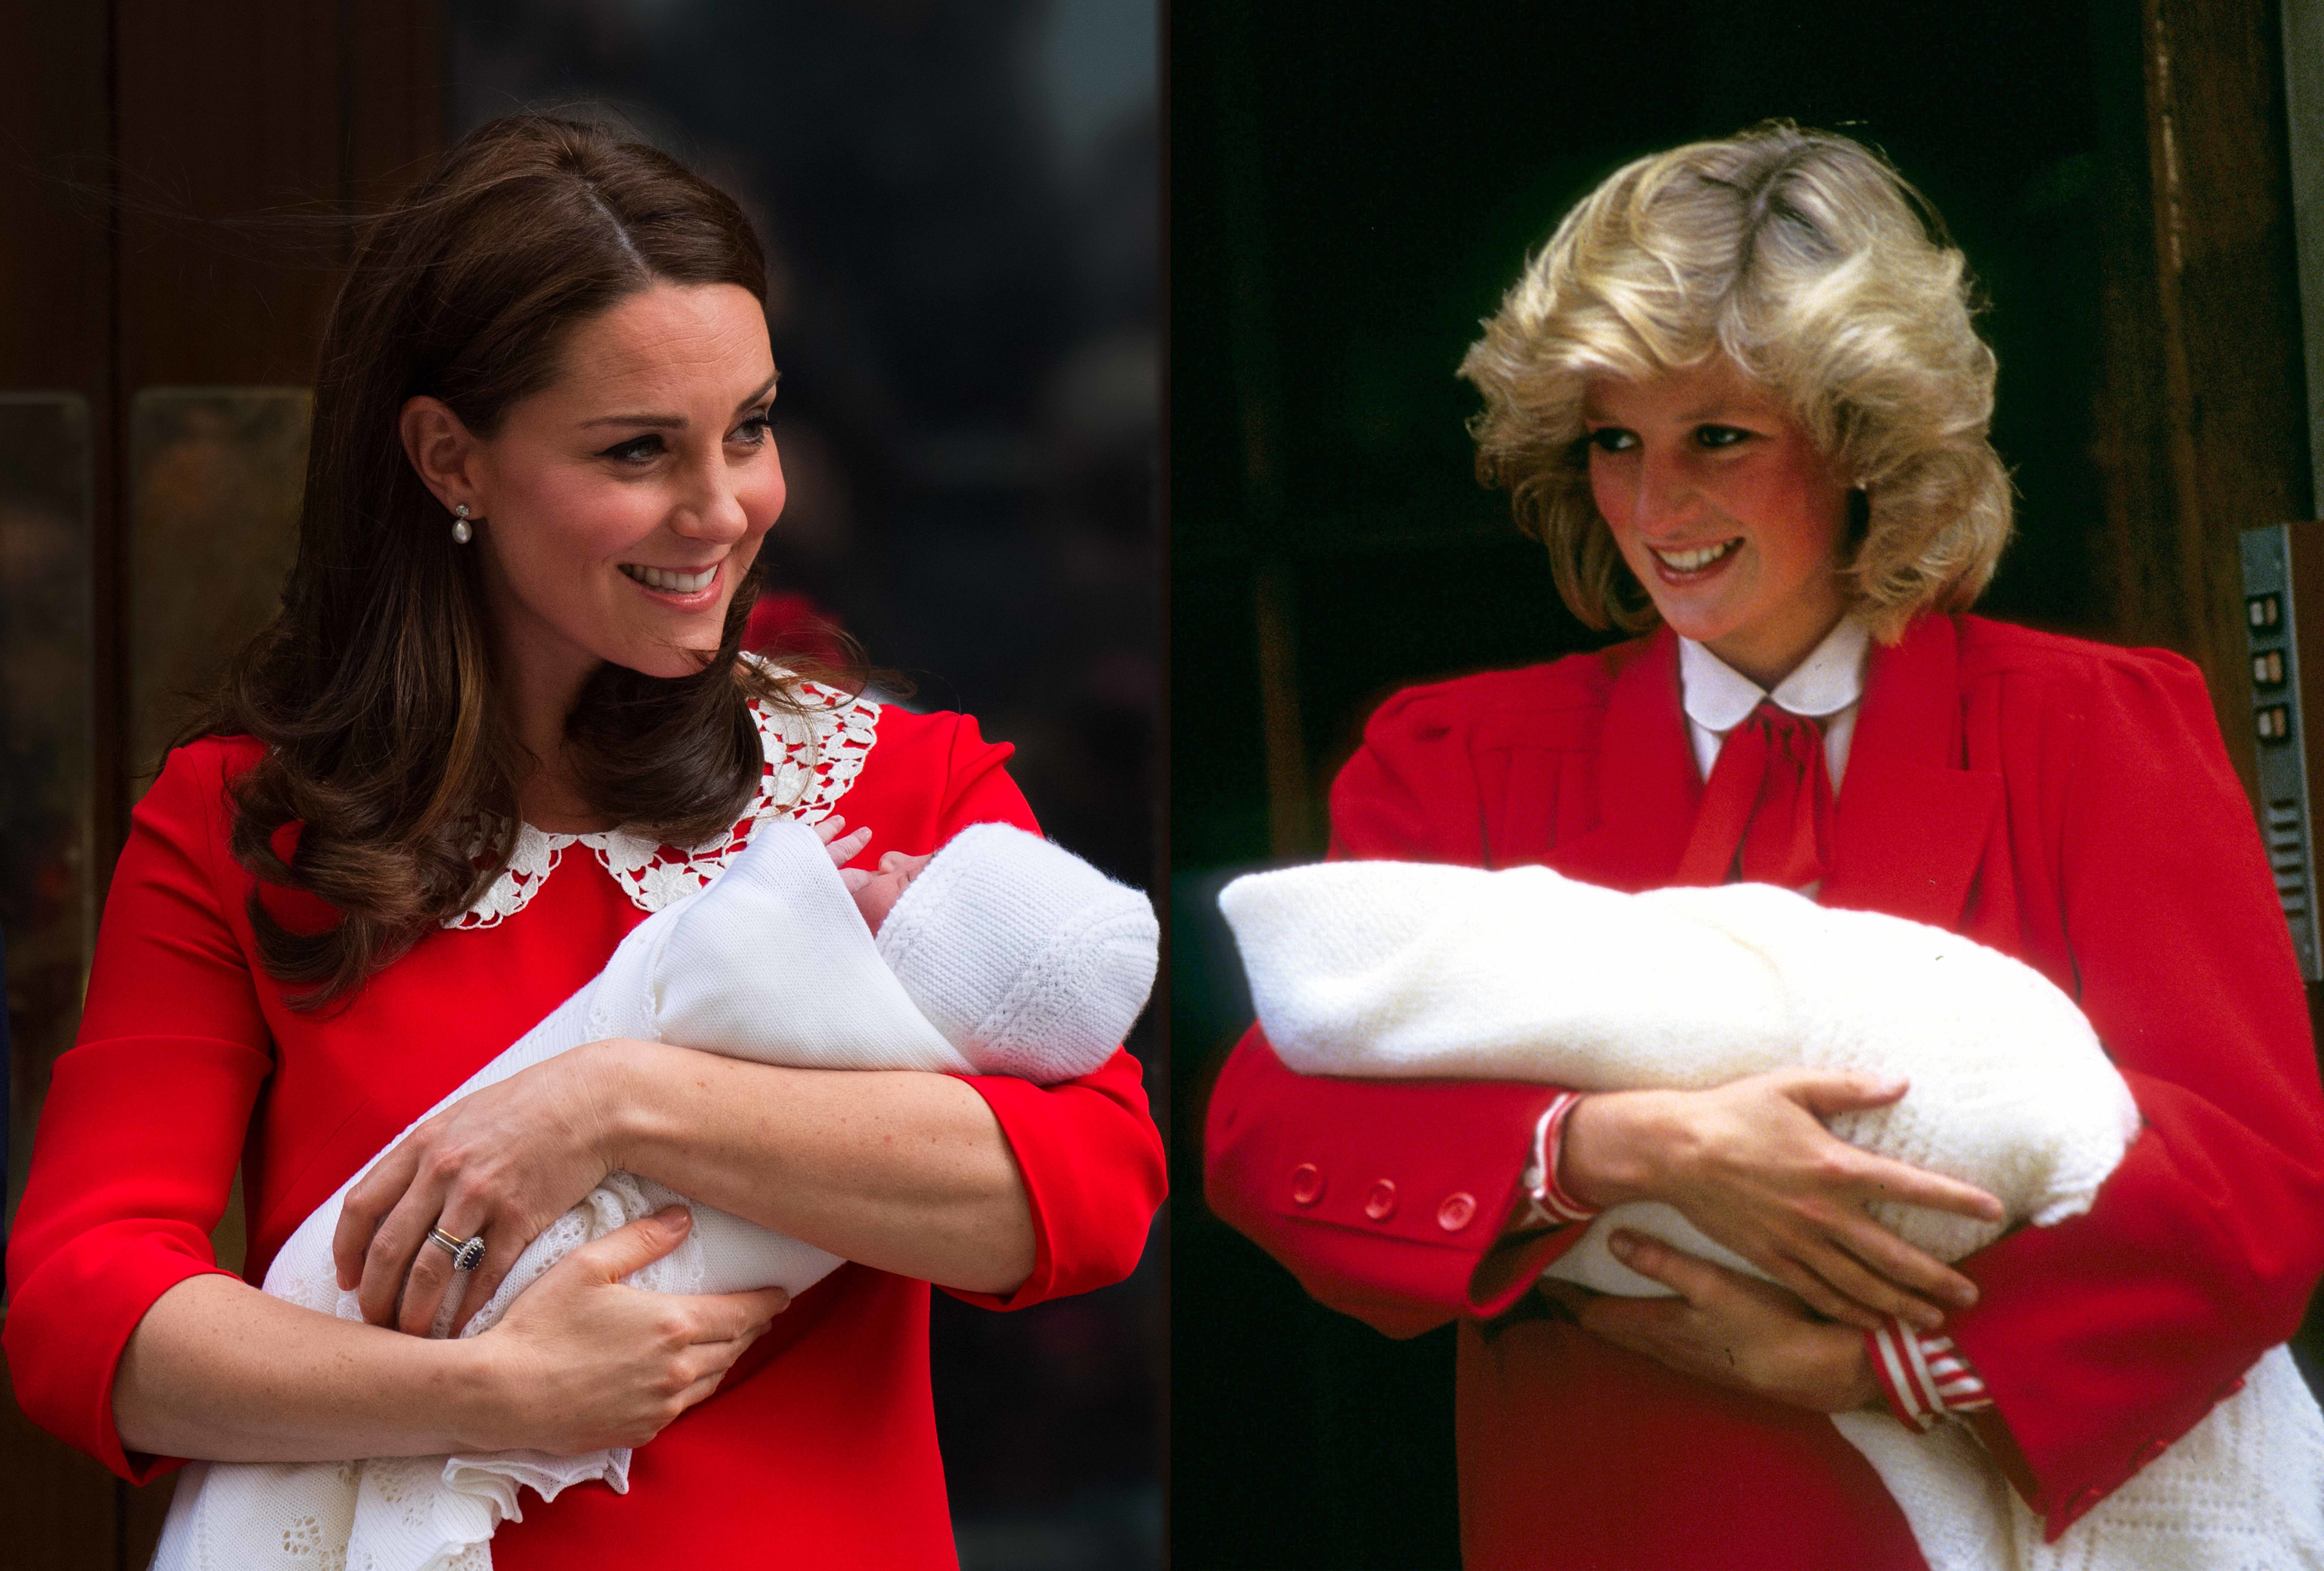 In this photo composite a comparison has been made between Catherine, Duchess of Cambridge carrying her newborn son and Diana, Princess of Wales carrying her newborn son Prince Harry (R) both leaving the Lindo Wing of St Mary's hospital. ***LEFT IMAGE*** Editorial # 950804602 LONDON, UNITED KINGDOM - APRIL 23: Catherine, Duchess of Cambridge carries her newborn son as she leaves the Lindo Wing of St Mary's hospital on April 23, 2018 in London, England. (Photo by Anwar Hussein/WireImage) RIGHT IMAGE*** Editorial # 909562840 LONDON, UNITED KINGDOM - SEPTEMBER 17: Diana, Princess of Wales leaves the Lindo Wing, St Mary's Hospital with baby Prince Harry on September 17, 1984 in London, England. (Photo by Anwar Hussein/Getty Images)